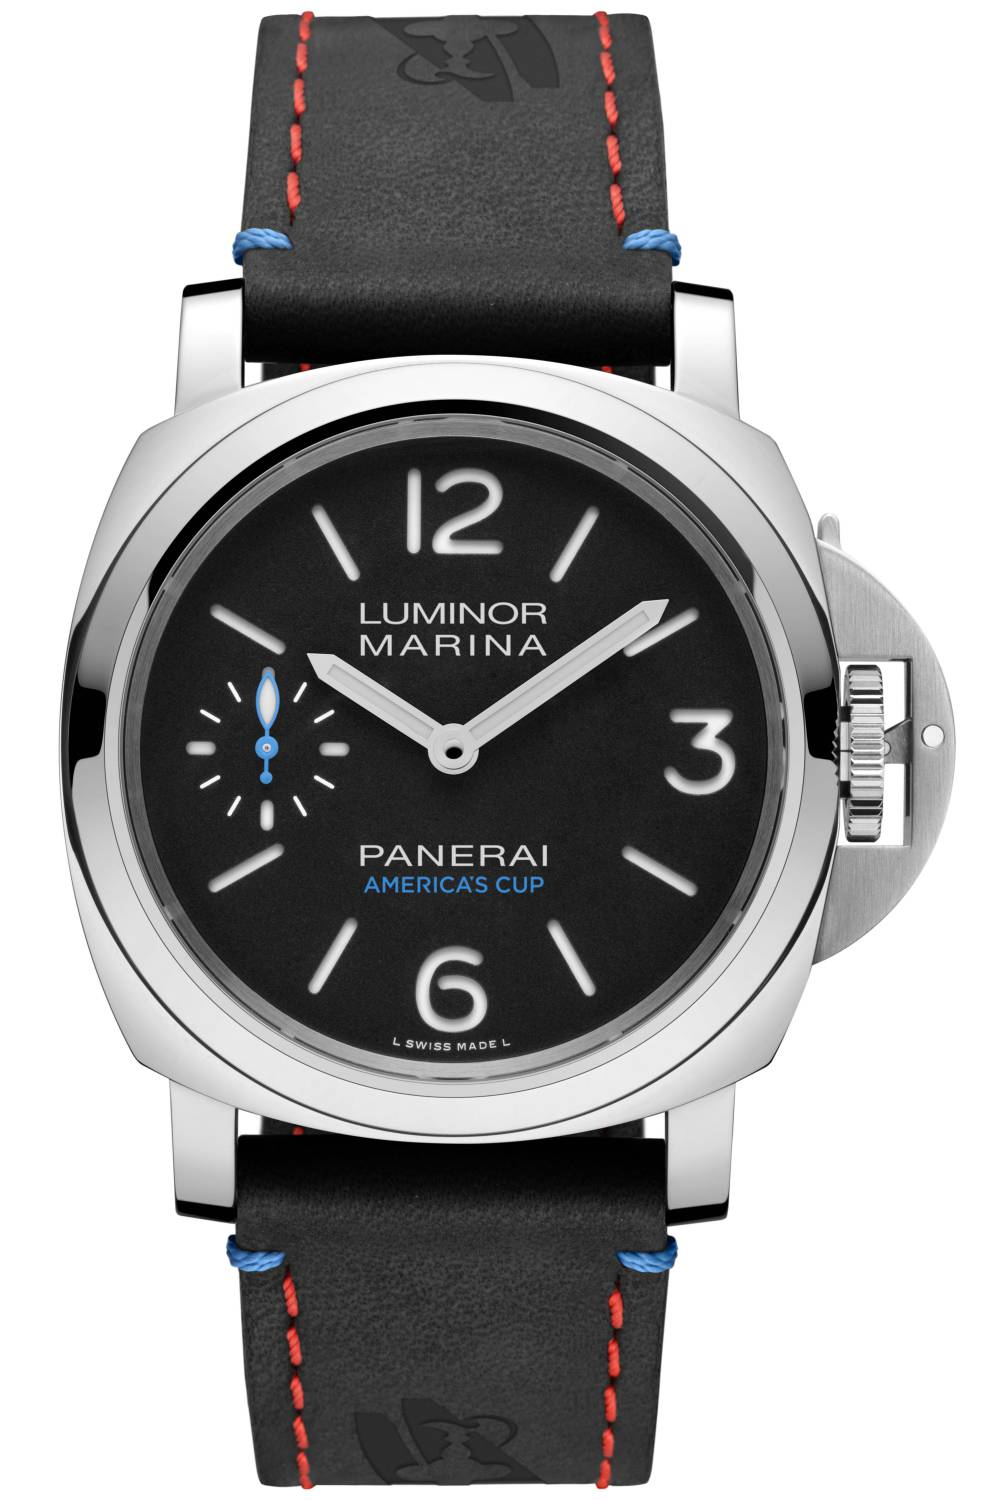 Panerai-Oracle-Team-USA-Americas-Cup-Pam00724-1.jpg